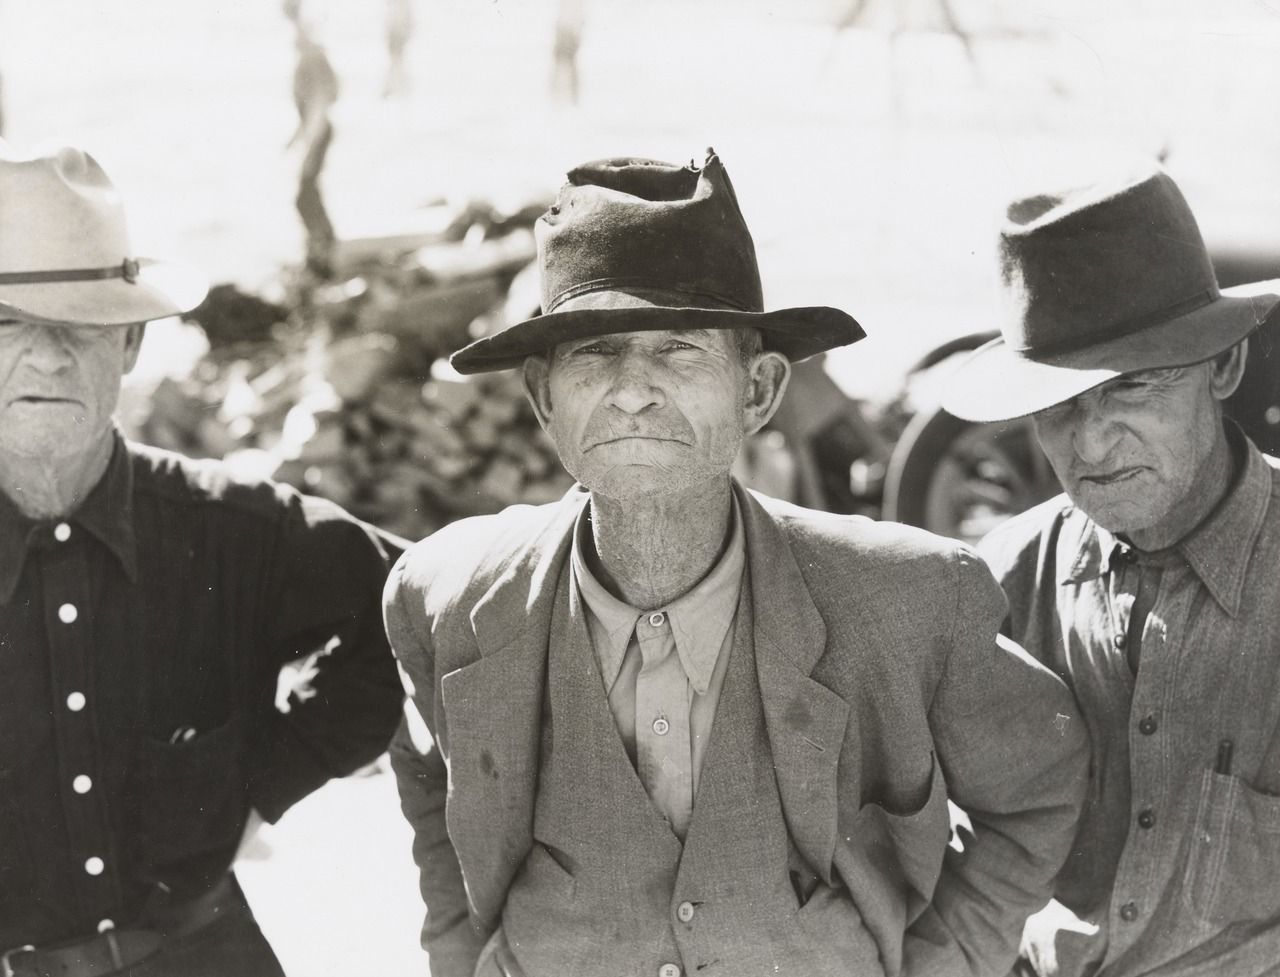 Ex-Tenant Farmer on Relief Grant (Lange, Dorothea. Ex-Tenant Farmer on Relief Grant in the Imperial Valley, California. 1937. Museum of Modern Art, New York. N.p.: n.p., n.d. N. pag. The Collection. Web. 4 Oct. 2015.)